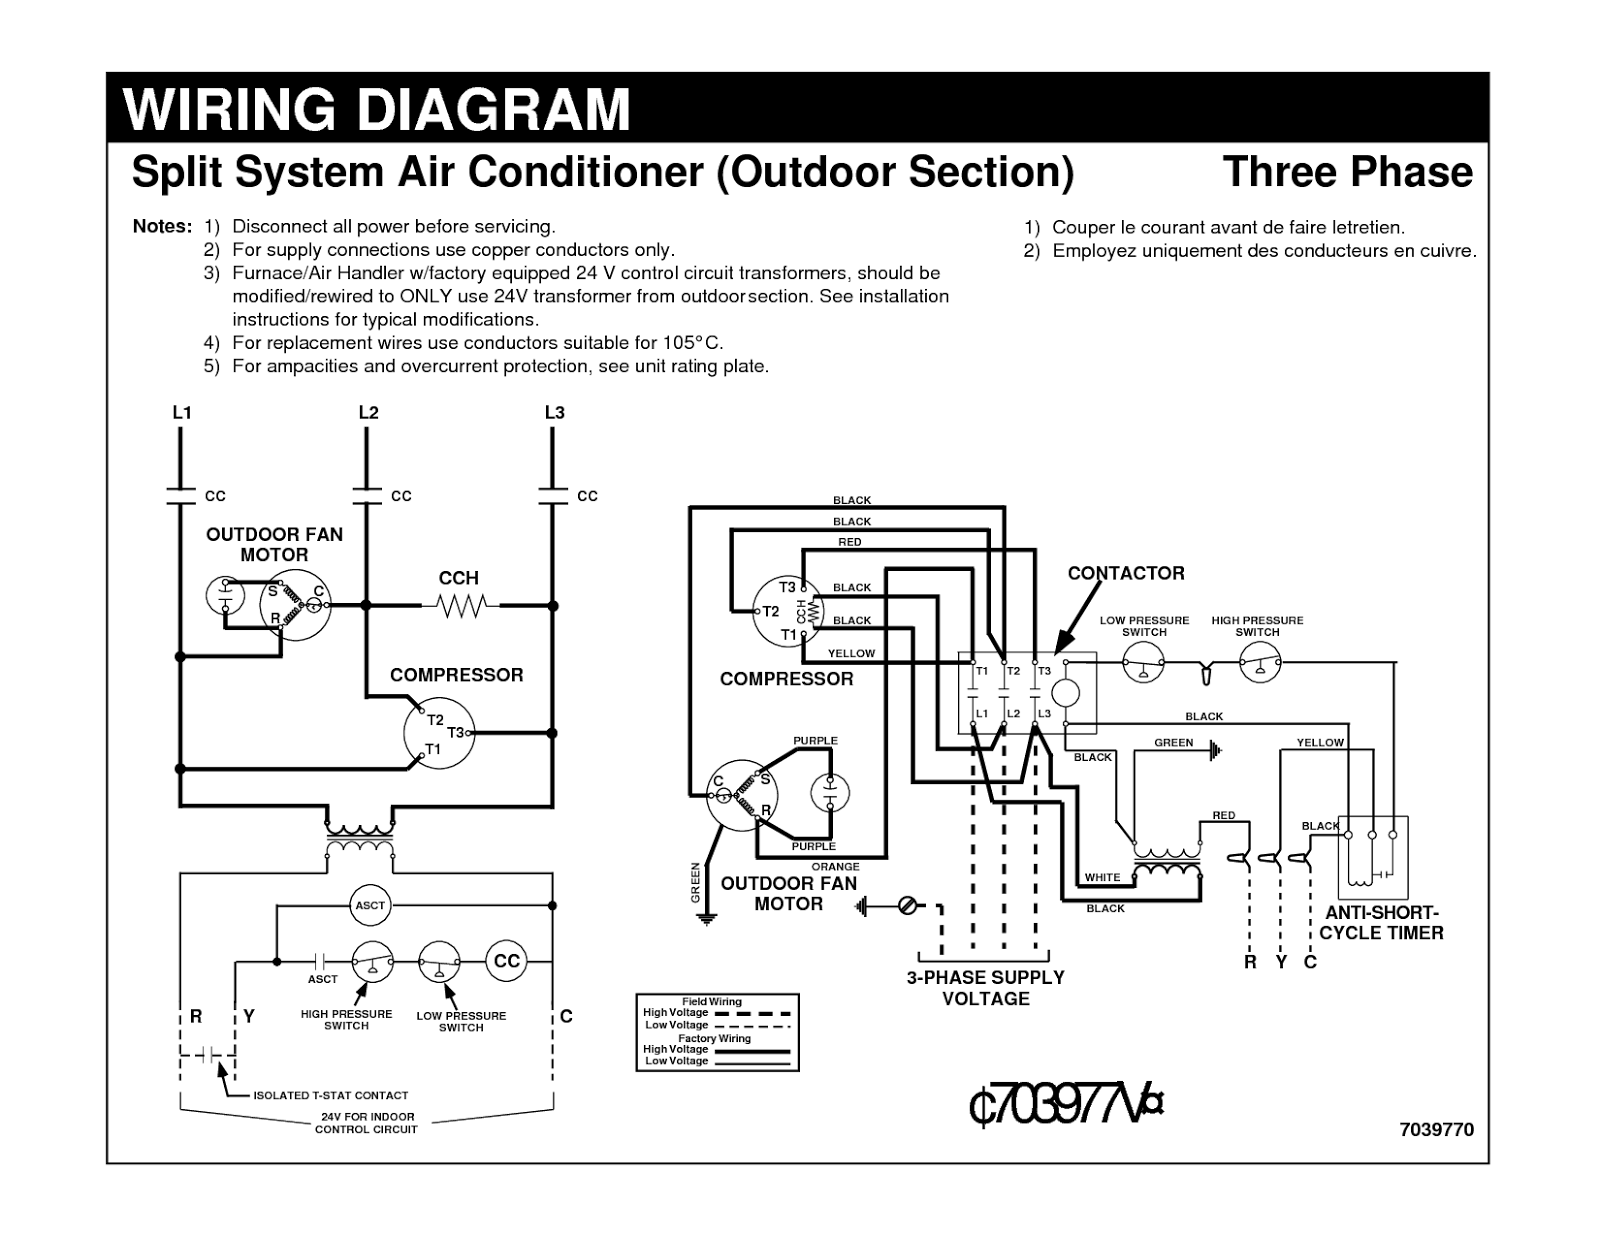 Ac Circuit Diagram Engine Control Wiring 3 Phase Voltage Regulator Electrical Diagrams For Air Conditioning Systems Split